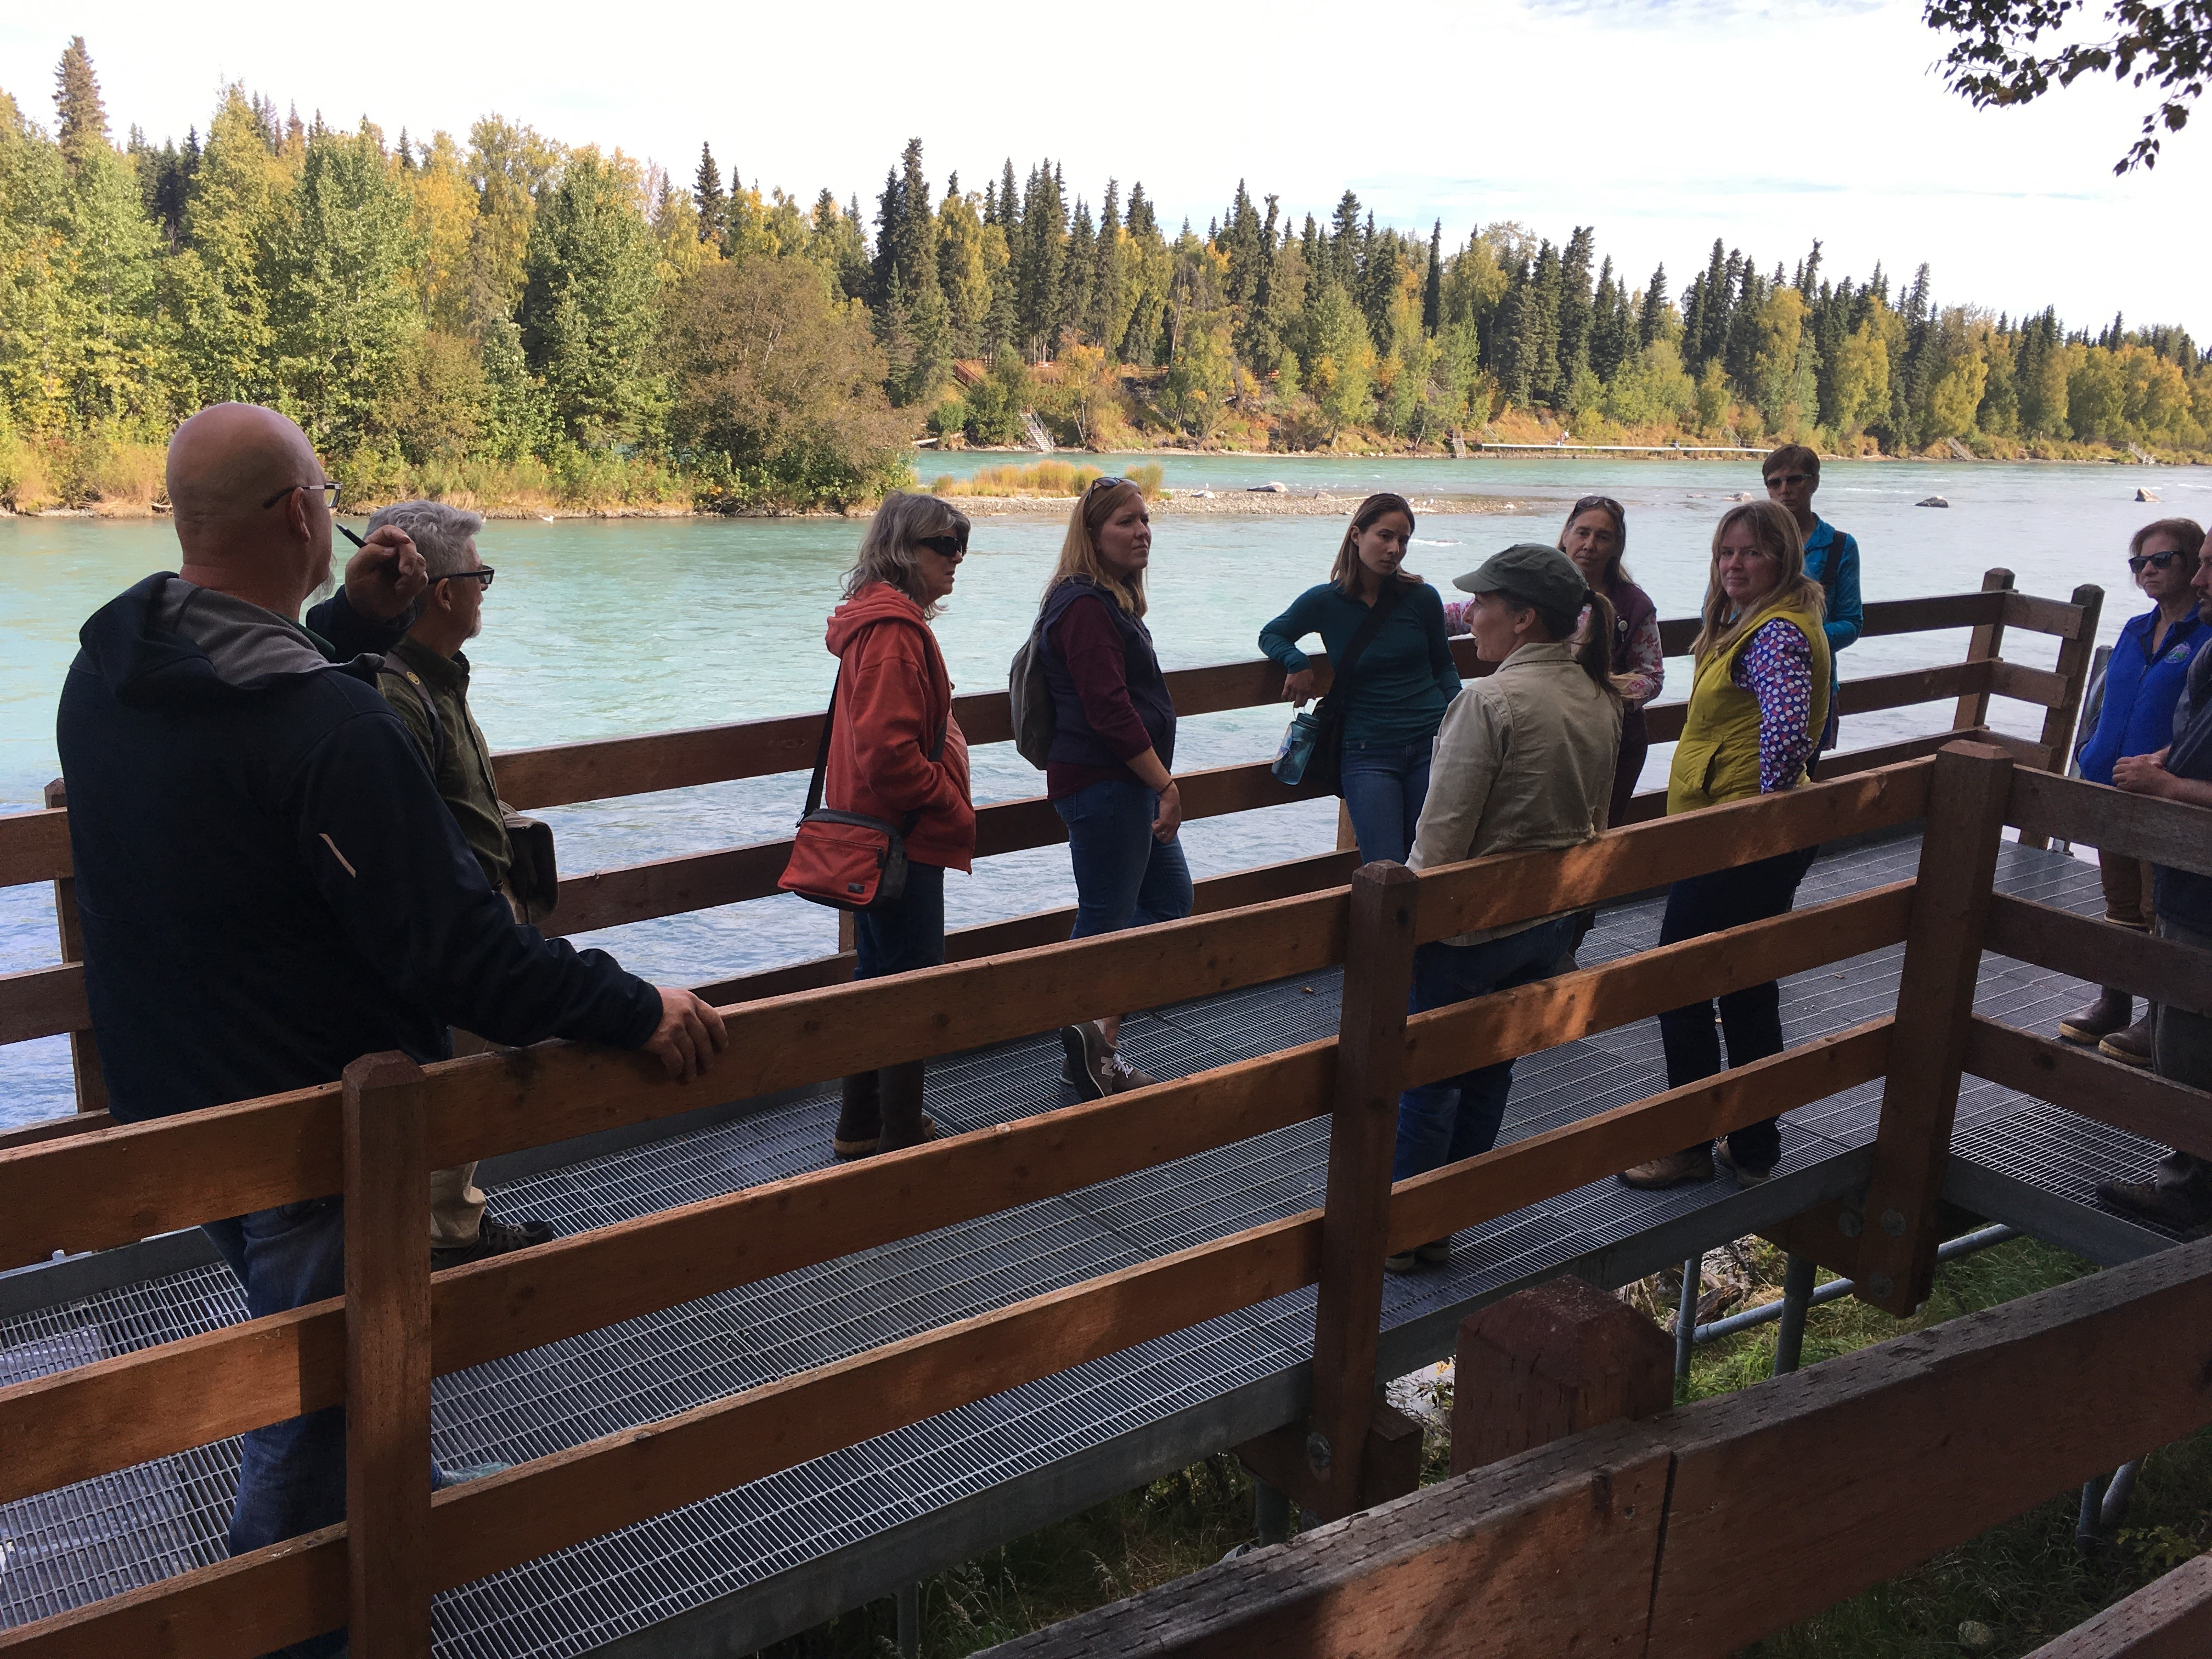 Green Infrastructure training participants visit Alaska site to discuss Solutions for Coastal Hazards